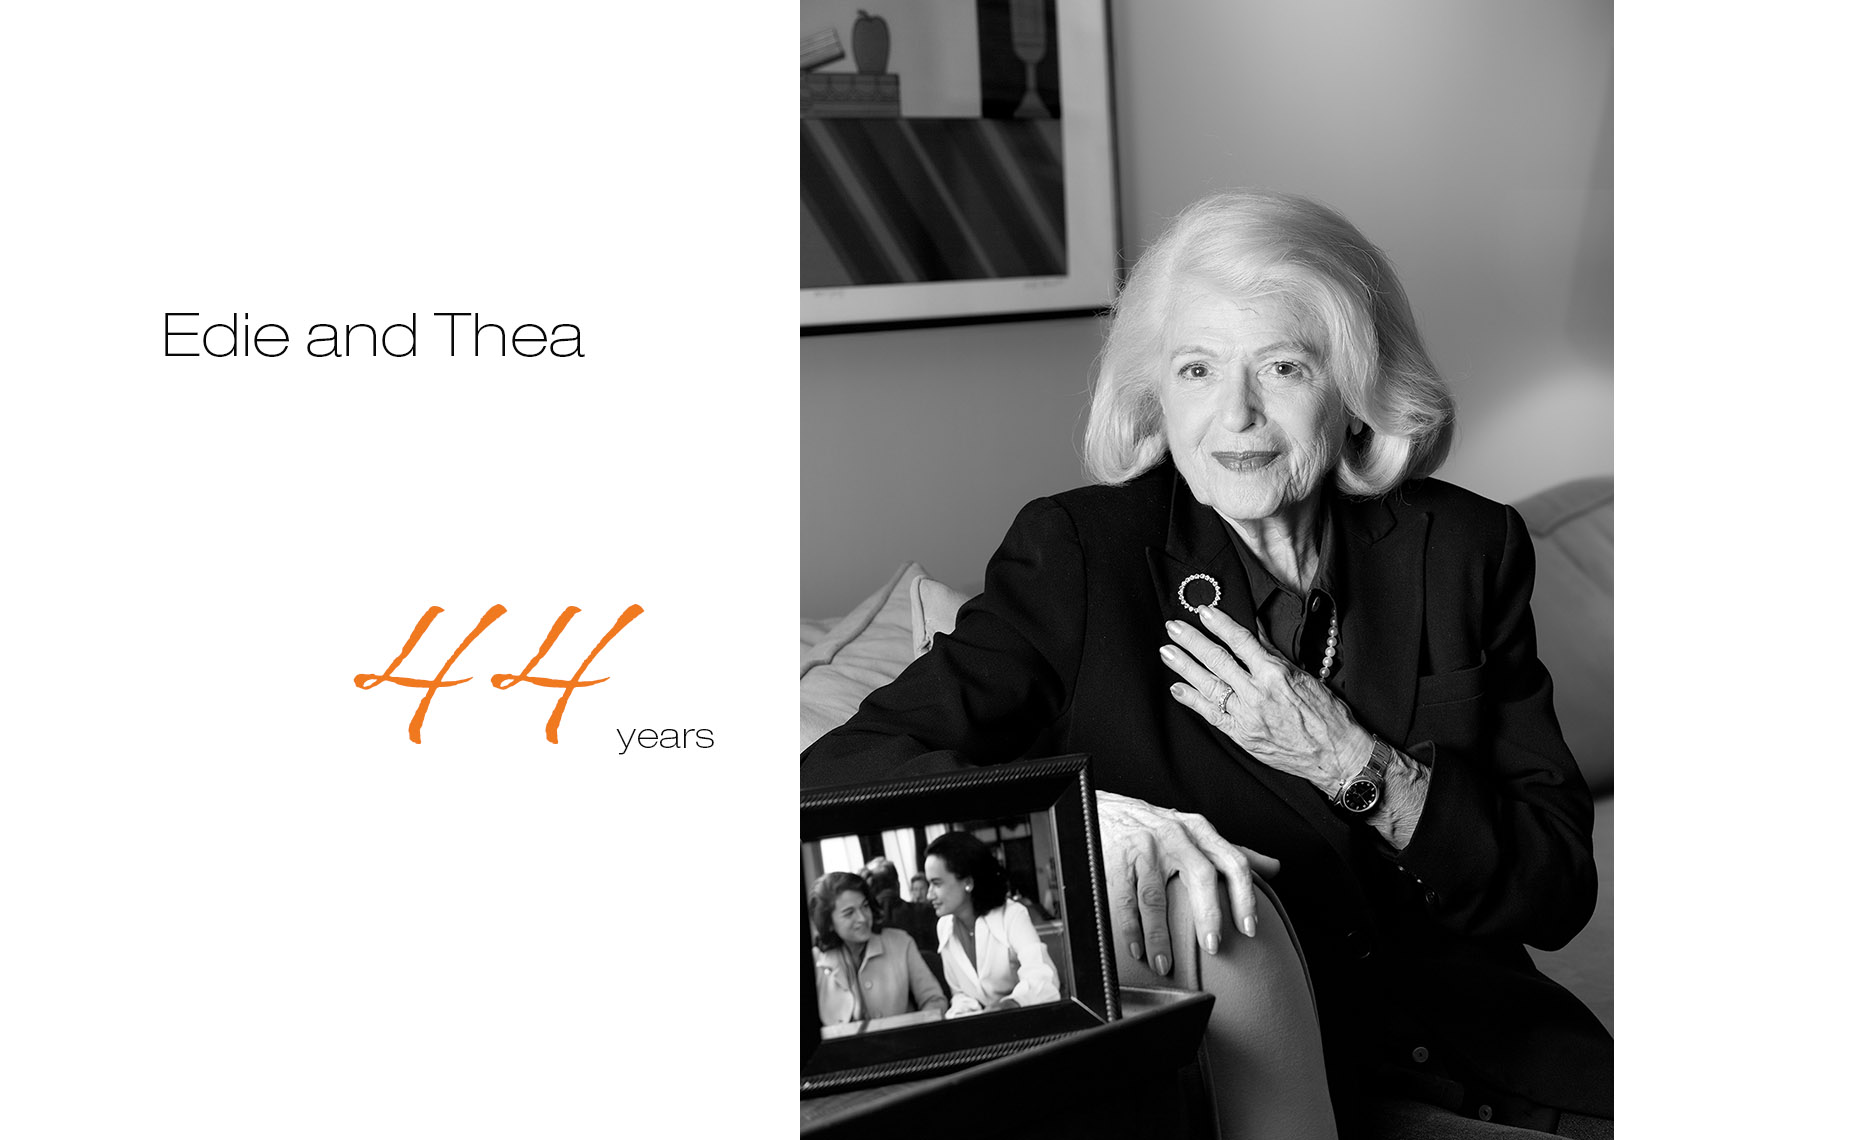 EdieandThea_44yrs, Edie Windsor and Thea Spyer, First Comes Love,  LGBTQ Couple